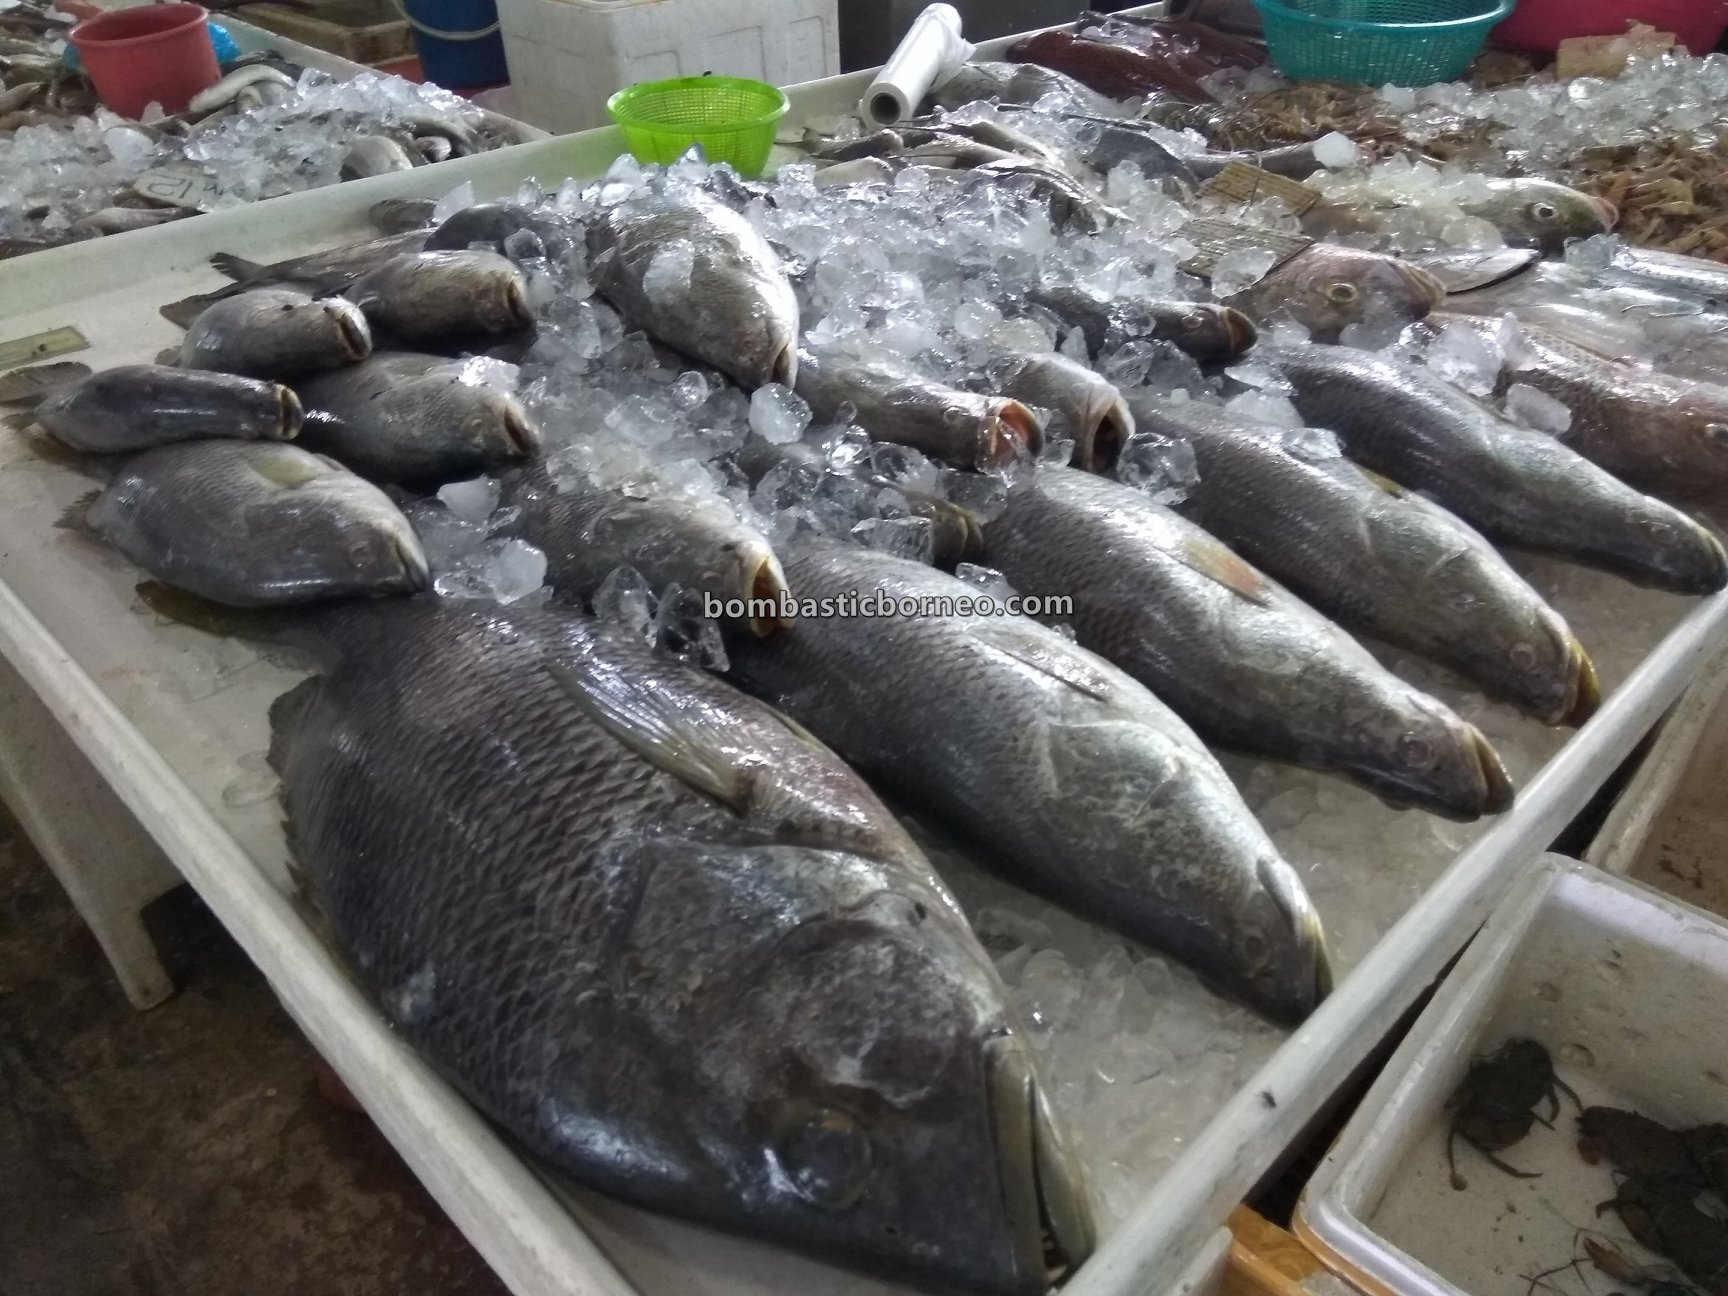 local market, traditional, backpackers, destination, exploration, fish, seafood, Borneo, Malaysia, Tourism, tourist attraction, travel guide, 跨境婆罗洲沙巴, 新安综合巴刹, 斗湖海鲜早市场,